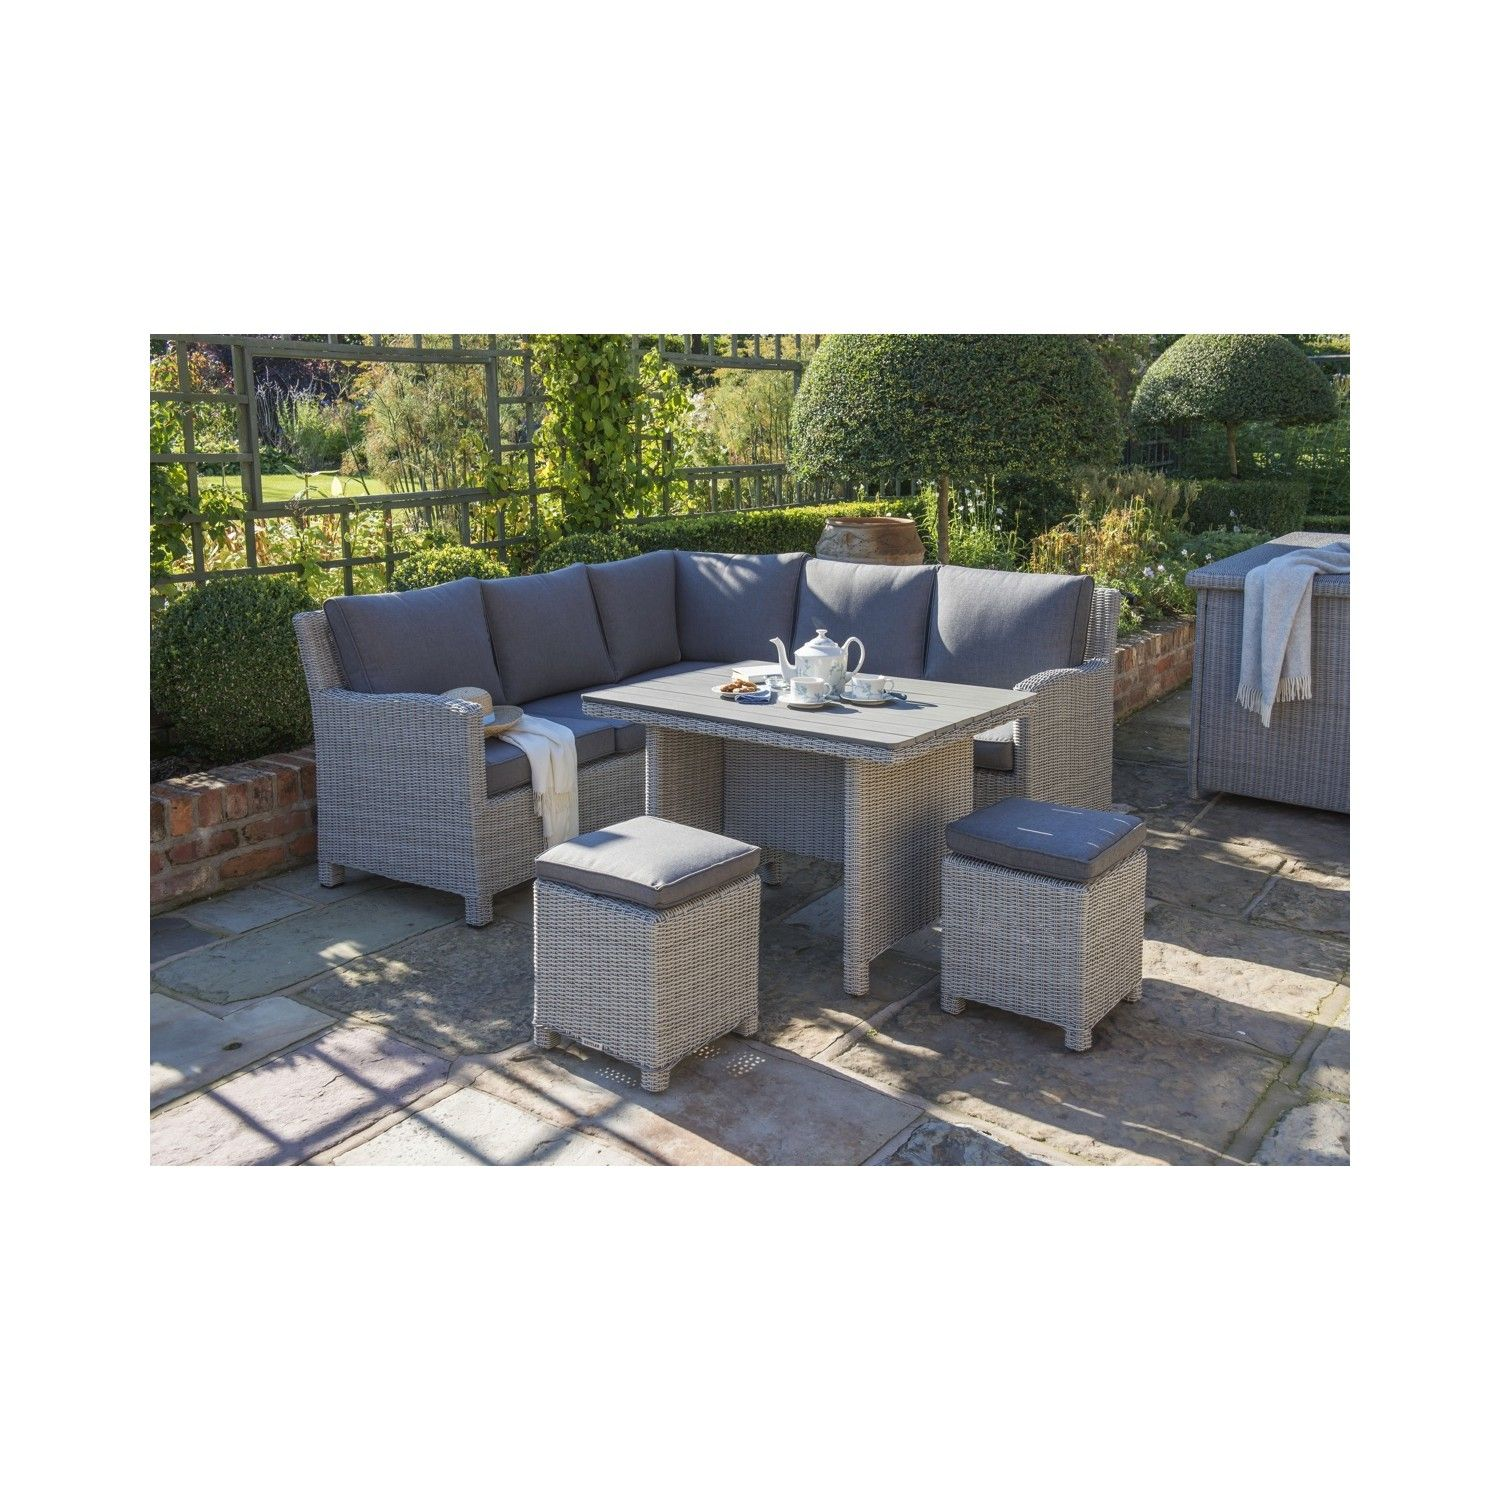 kettler palma mini corner set whitewash garden furniture casual dining - Garden Furniture Kettler